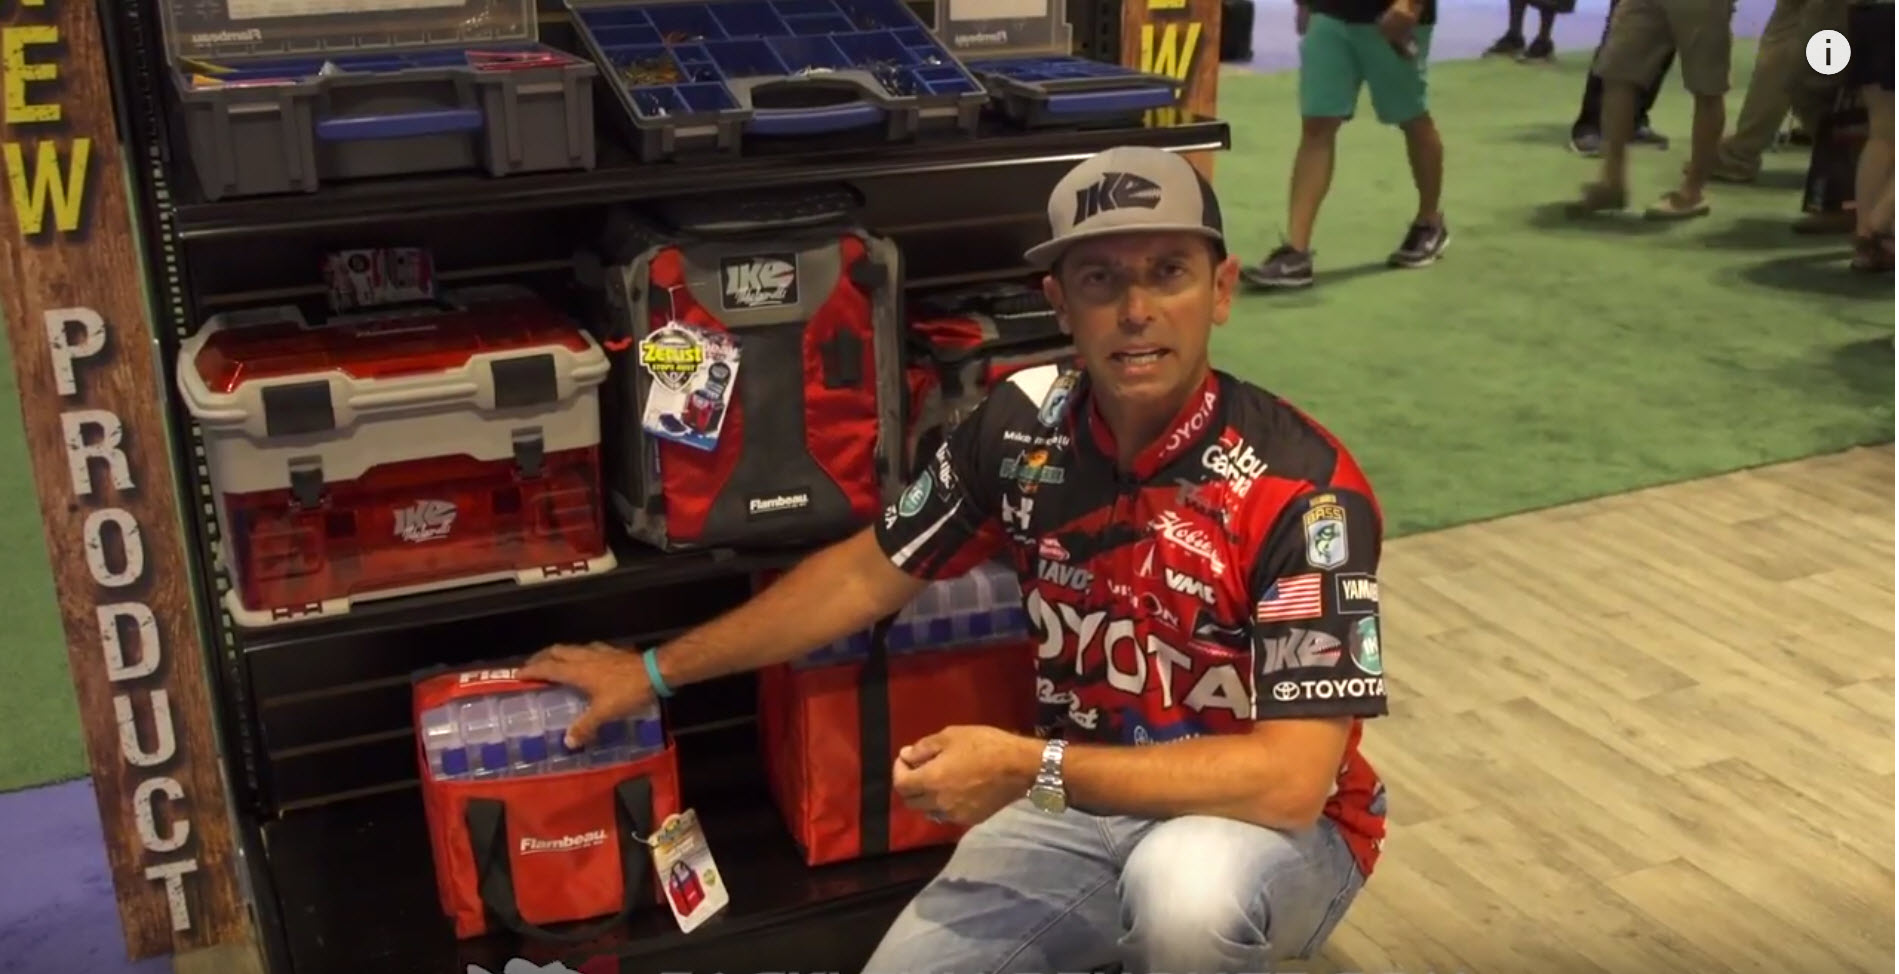 Mike Iaconelli & Flambeau